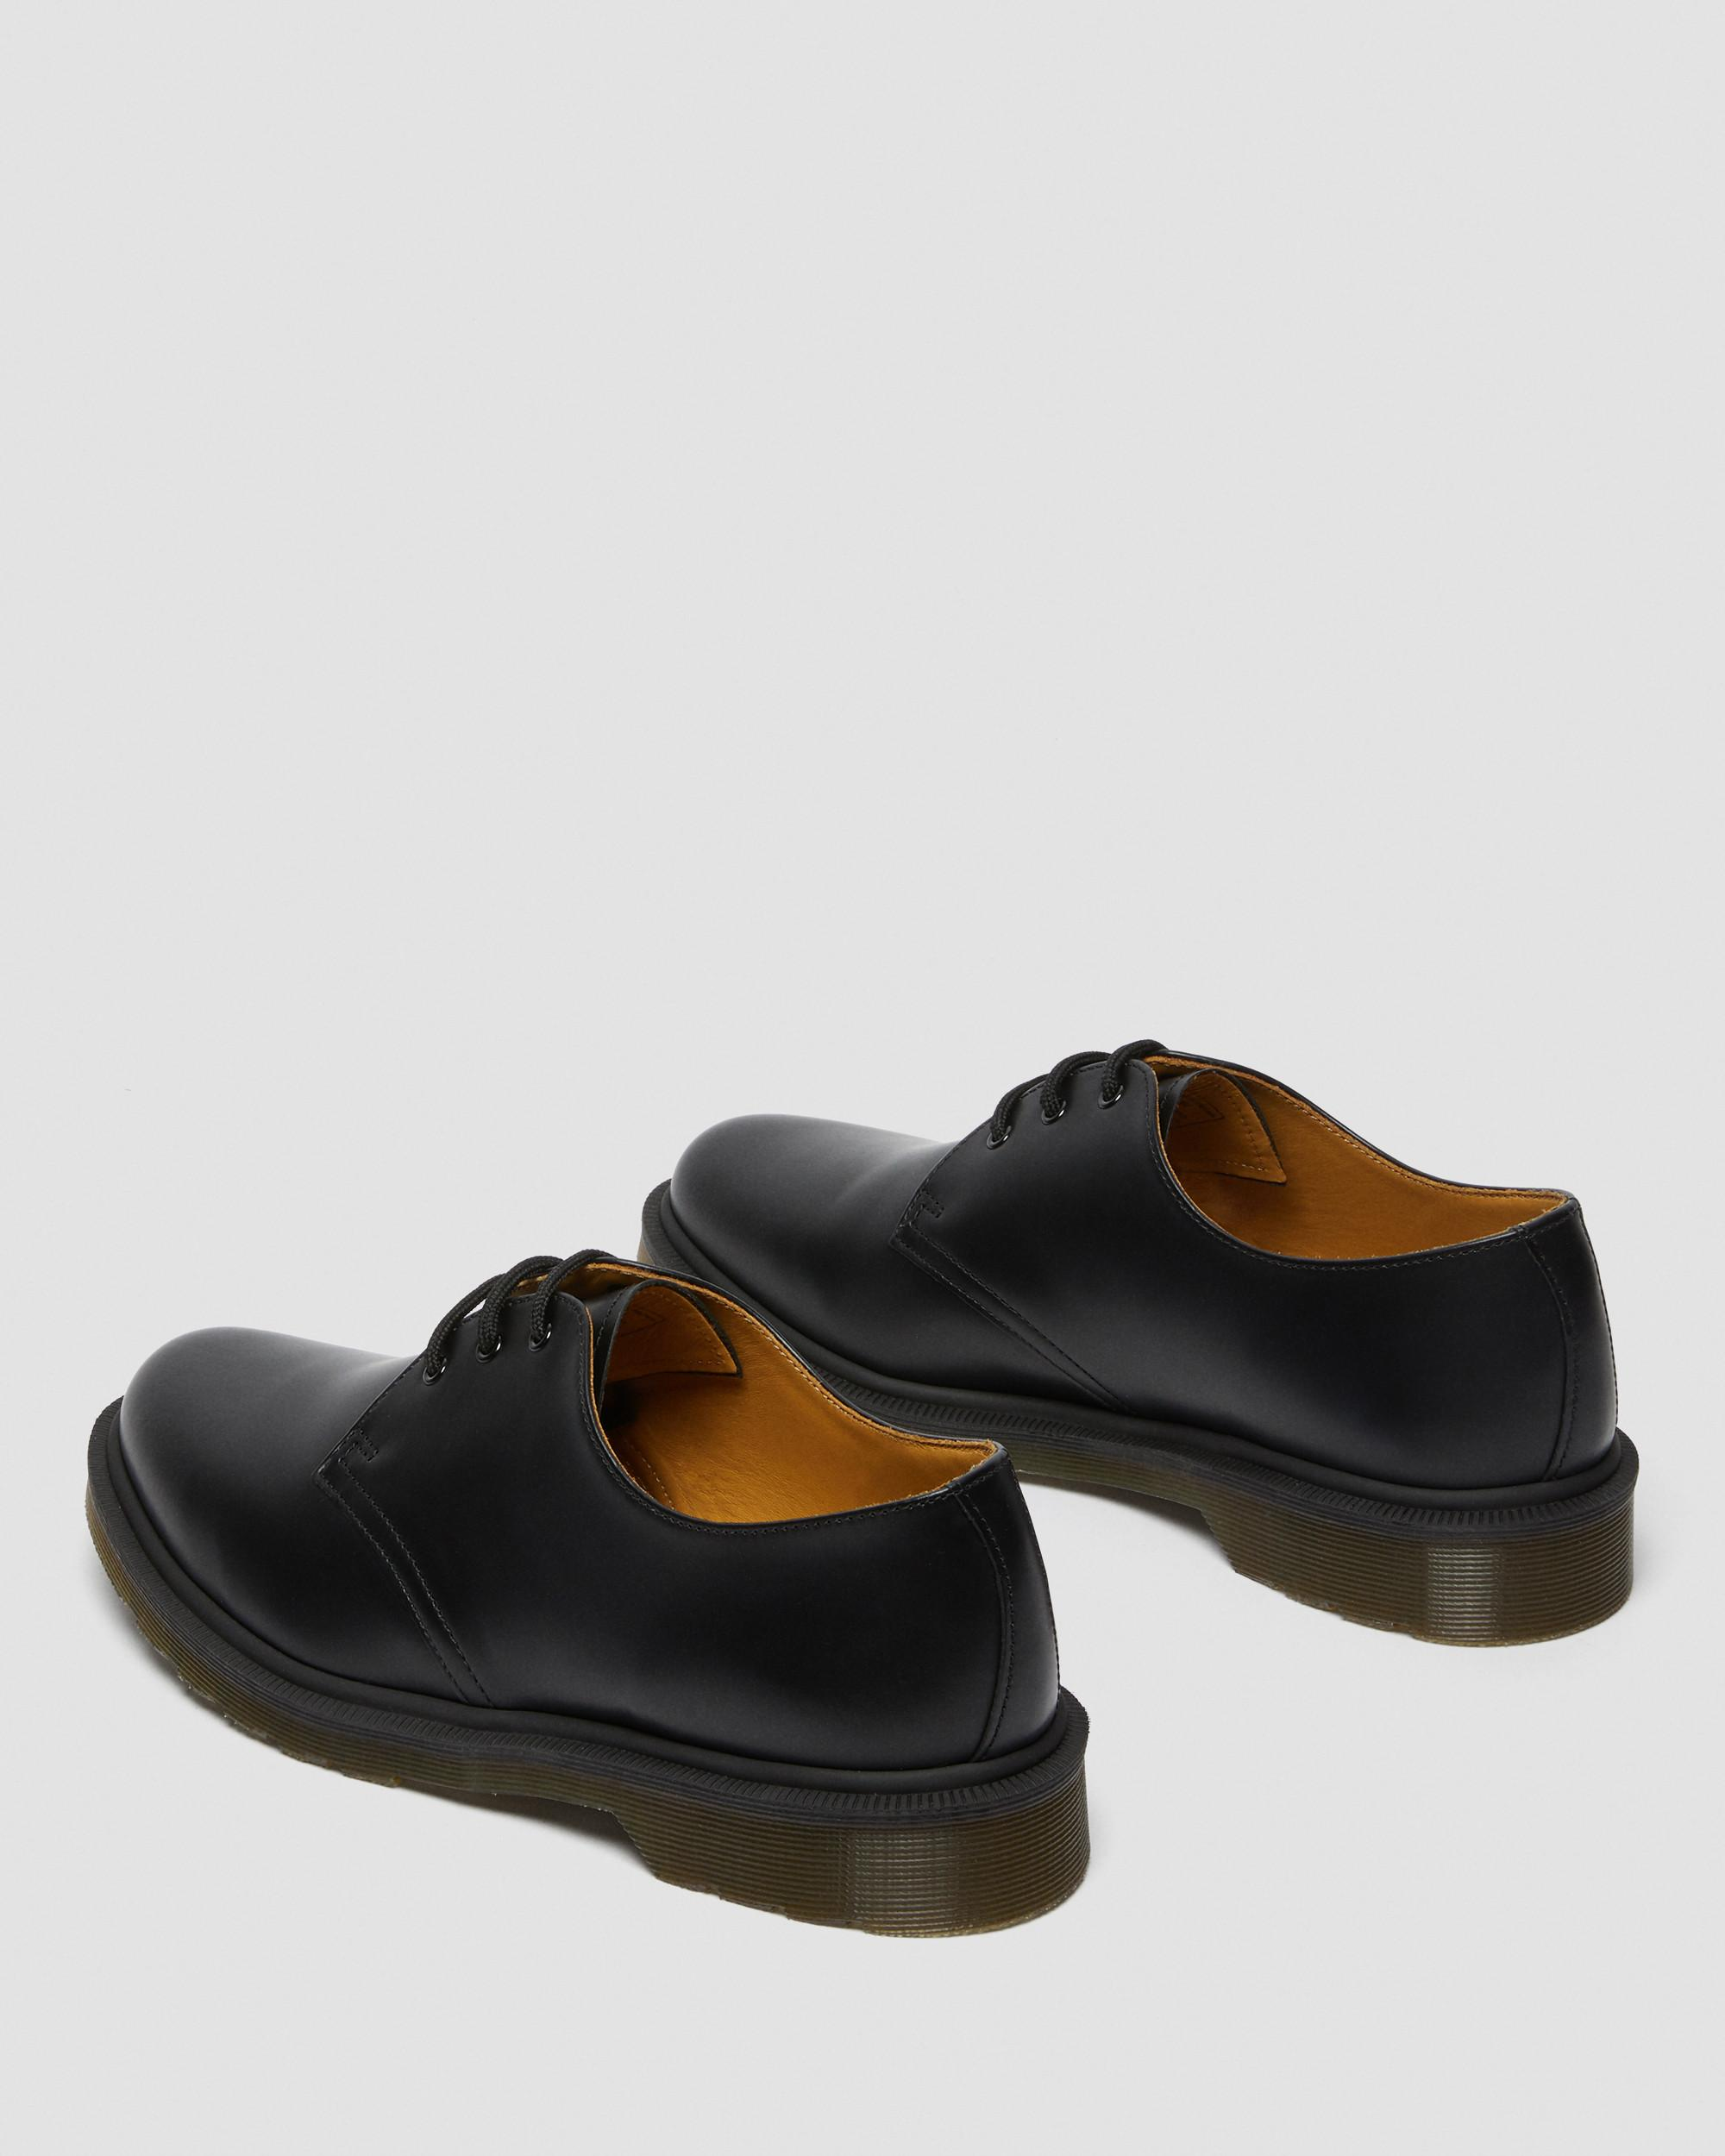 DR MARTENS 1461 Narrow Fit Smooth